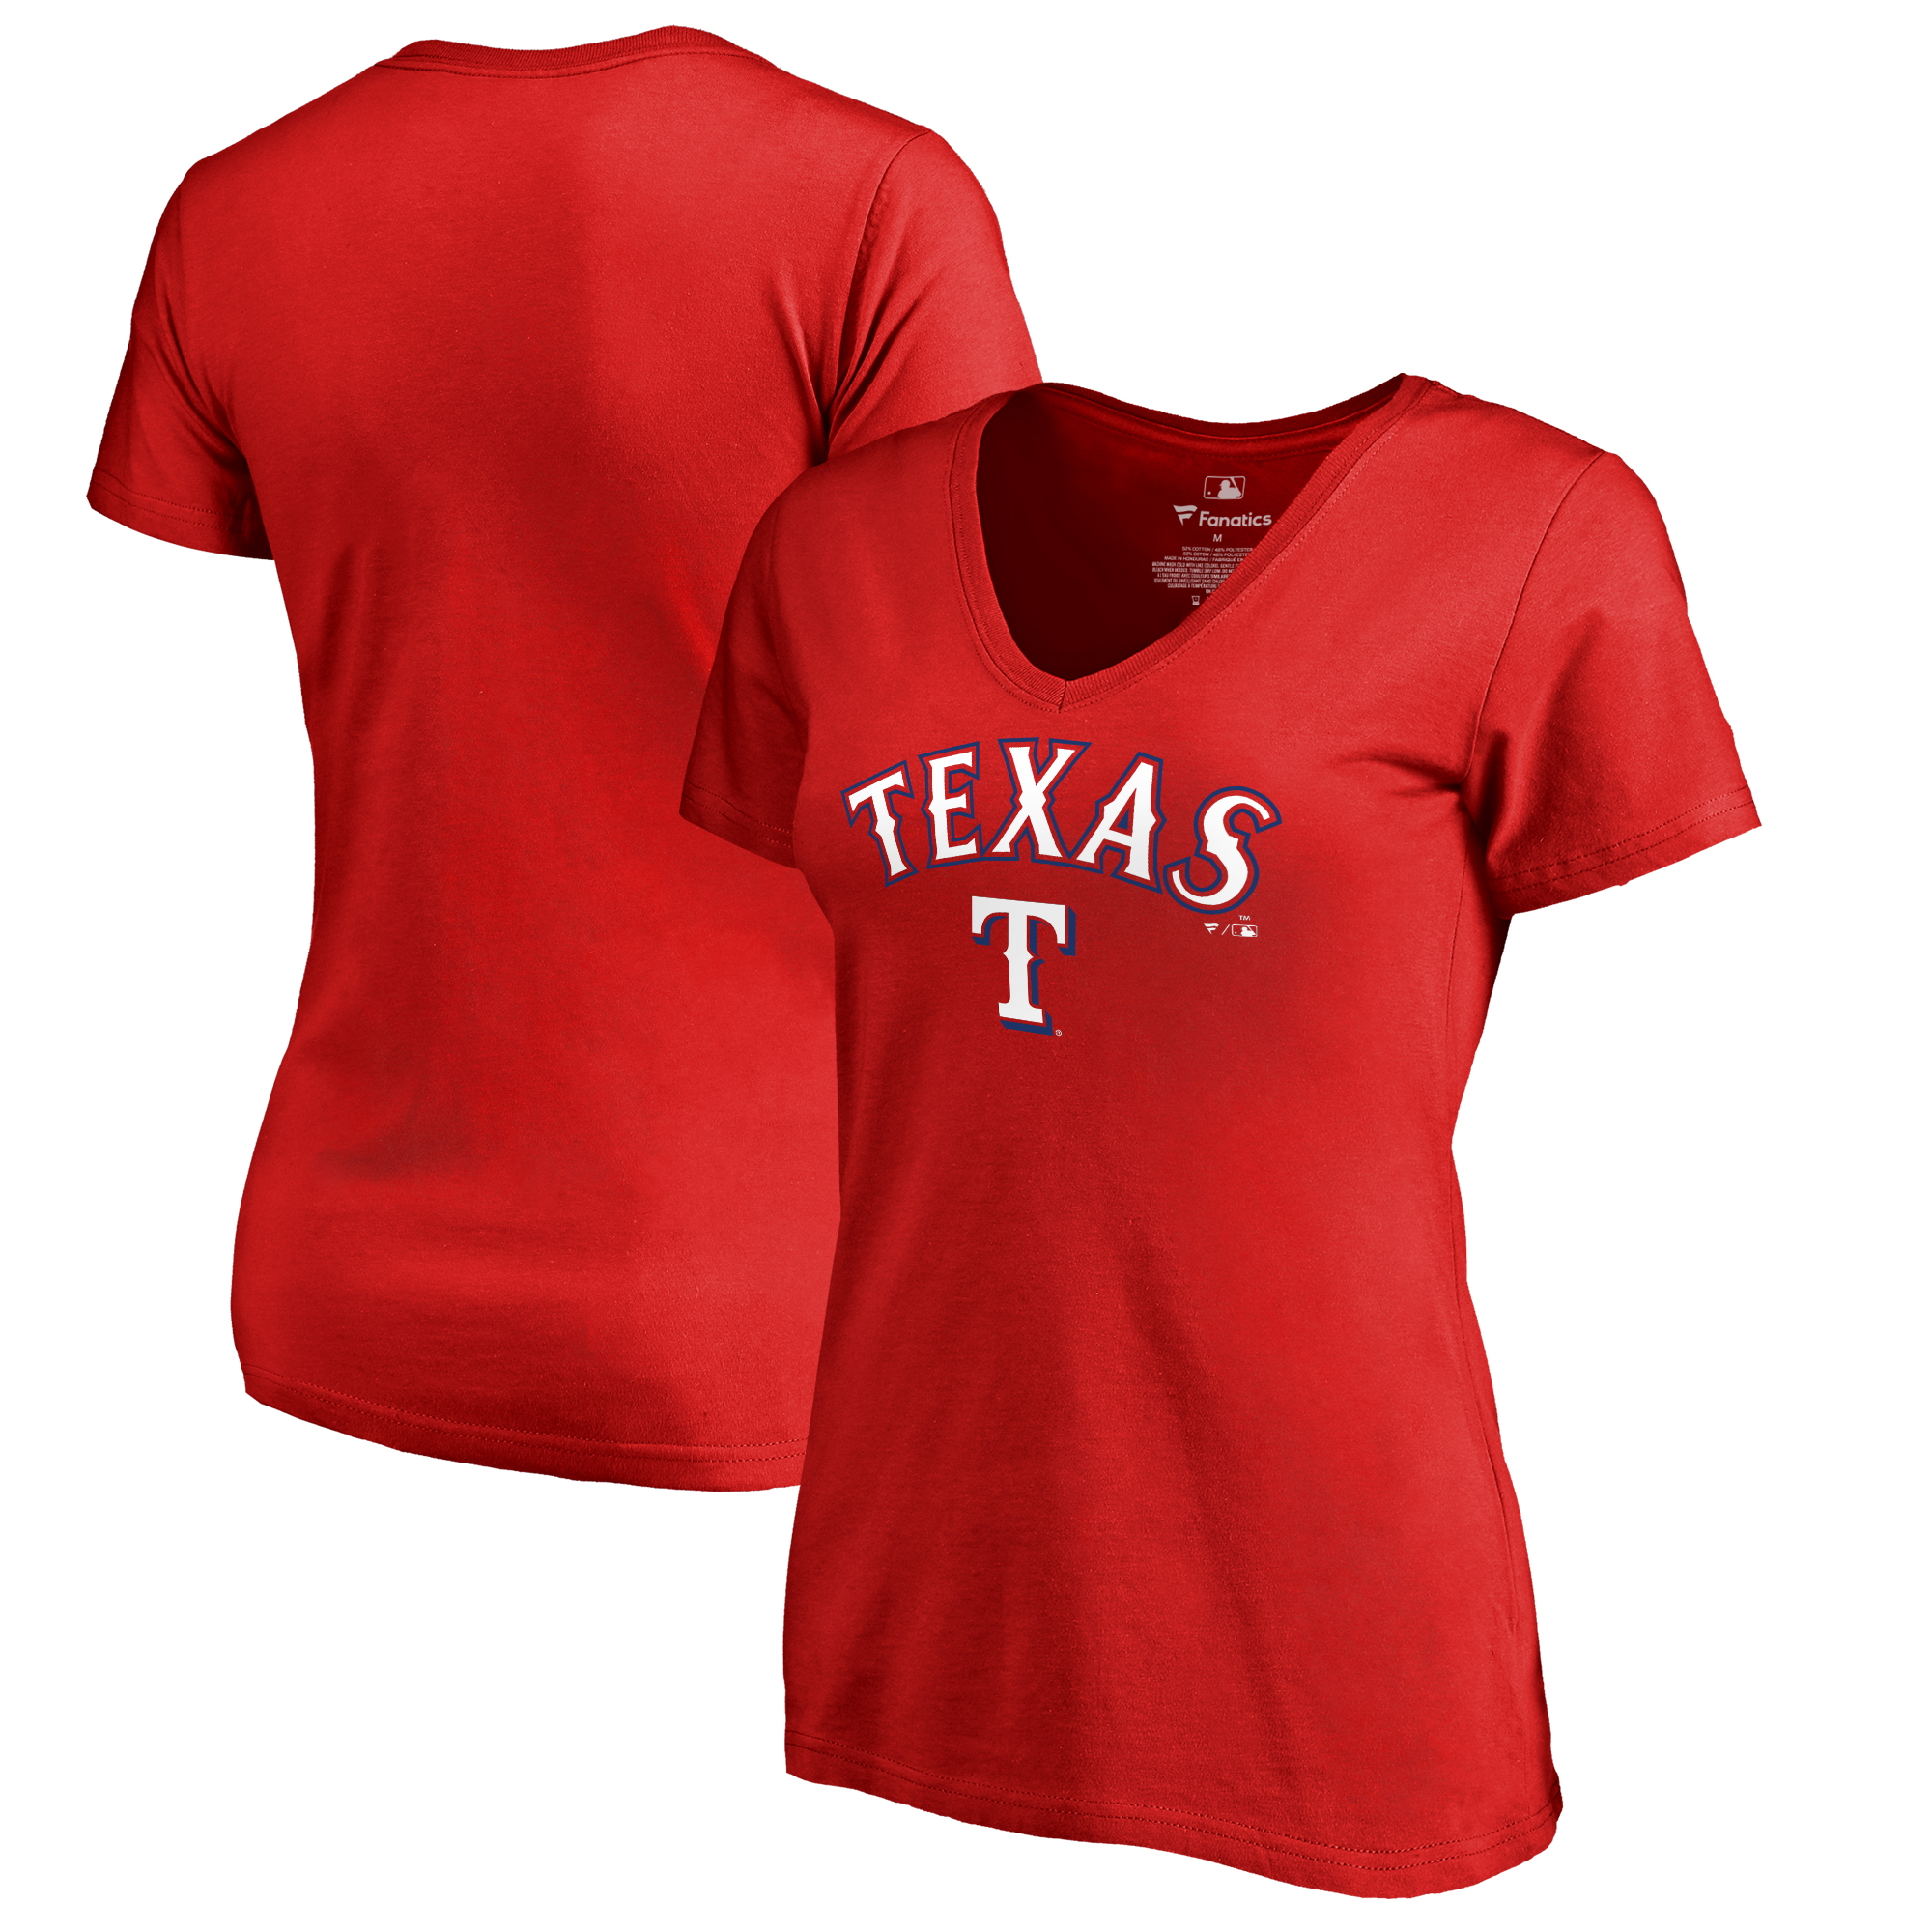 Texas Rangers Fanatics Branded Women's Team Lockup T-Shirt - Red